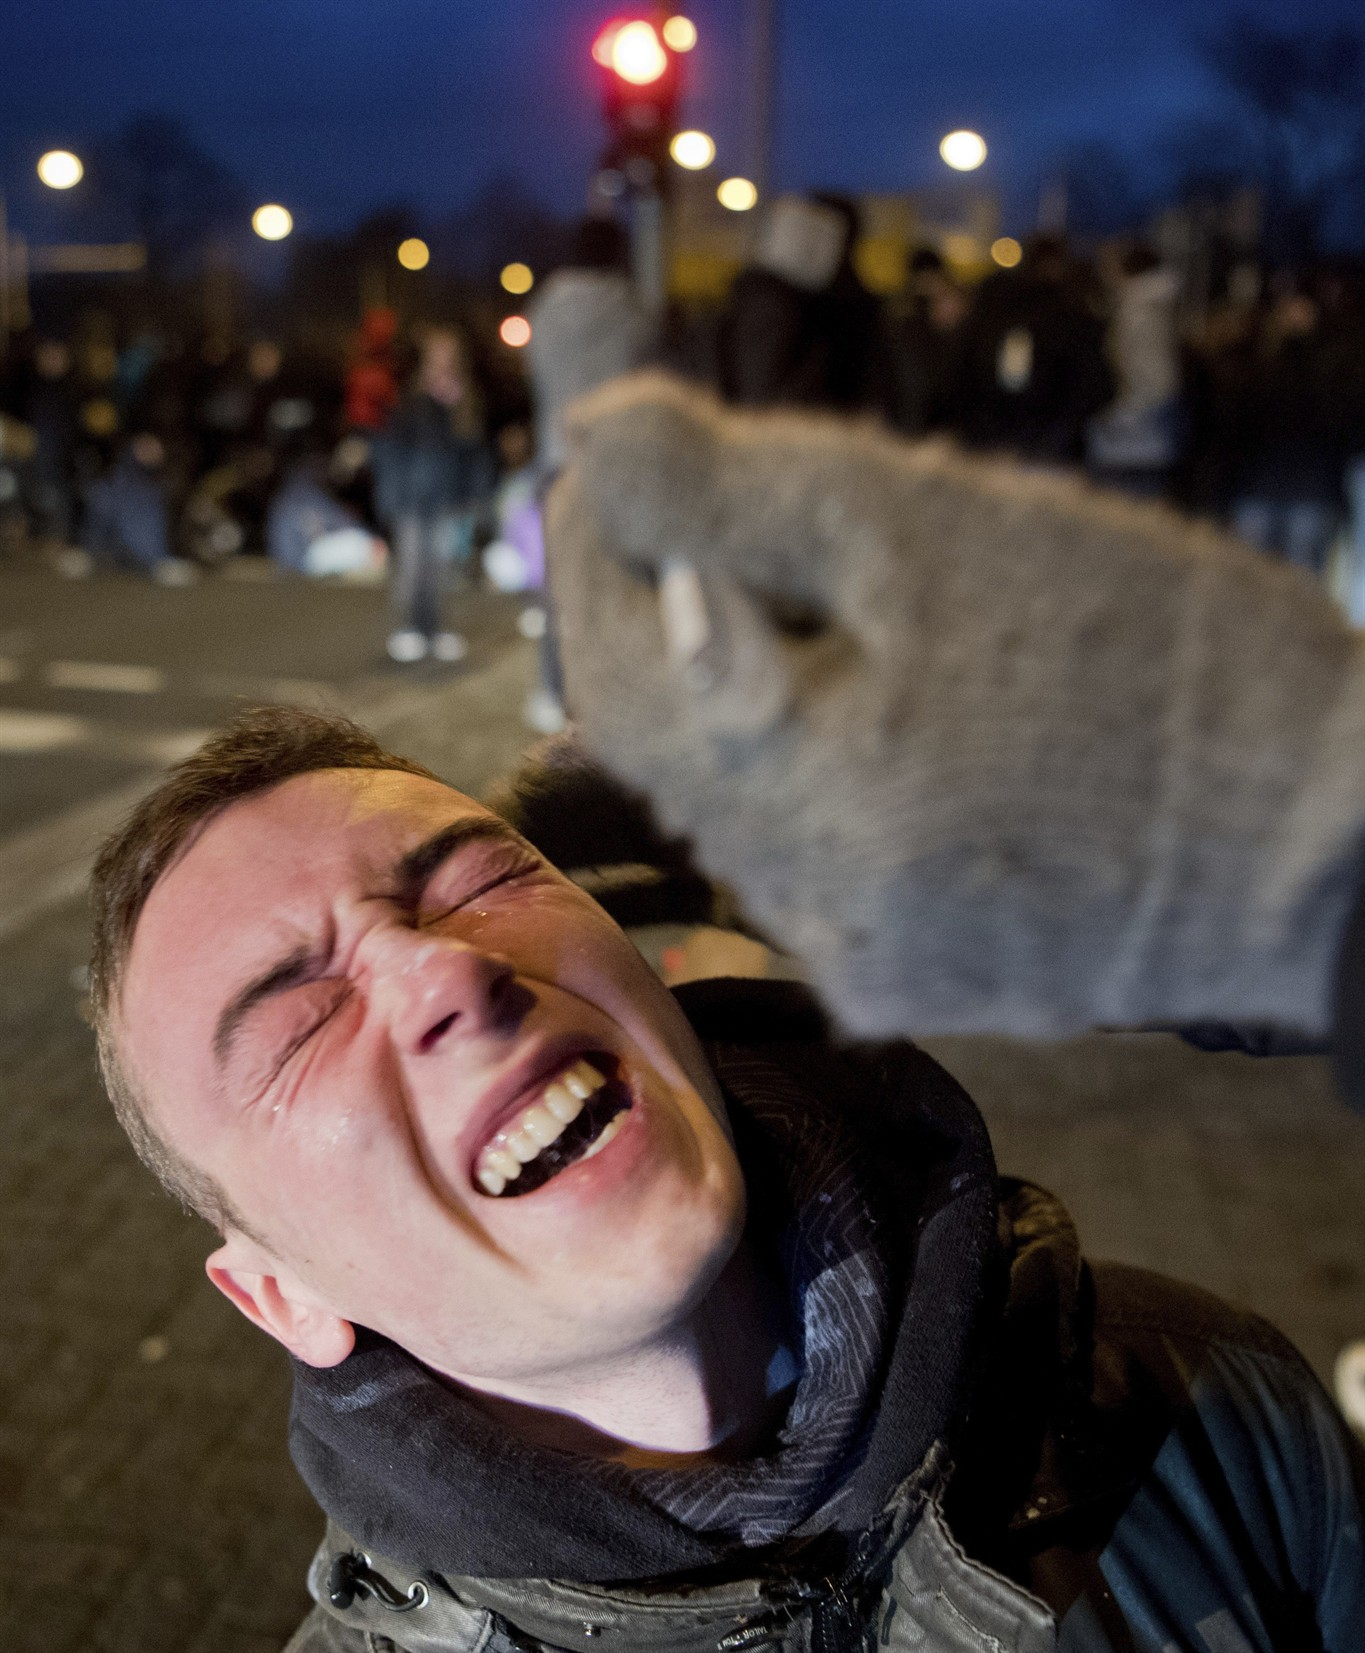 Alternative for Germany: Police and protesters clash over meeting